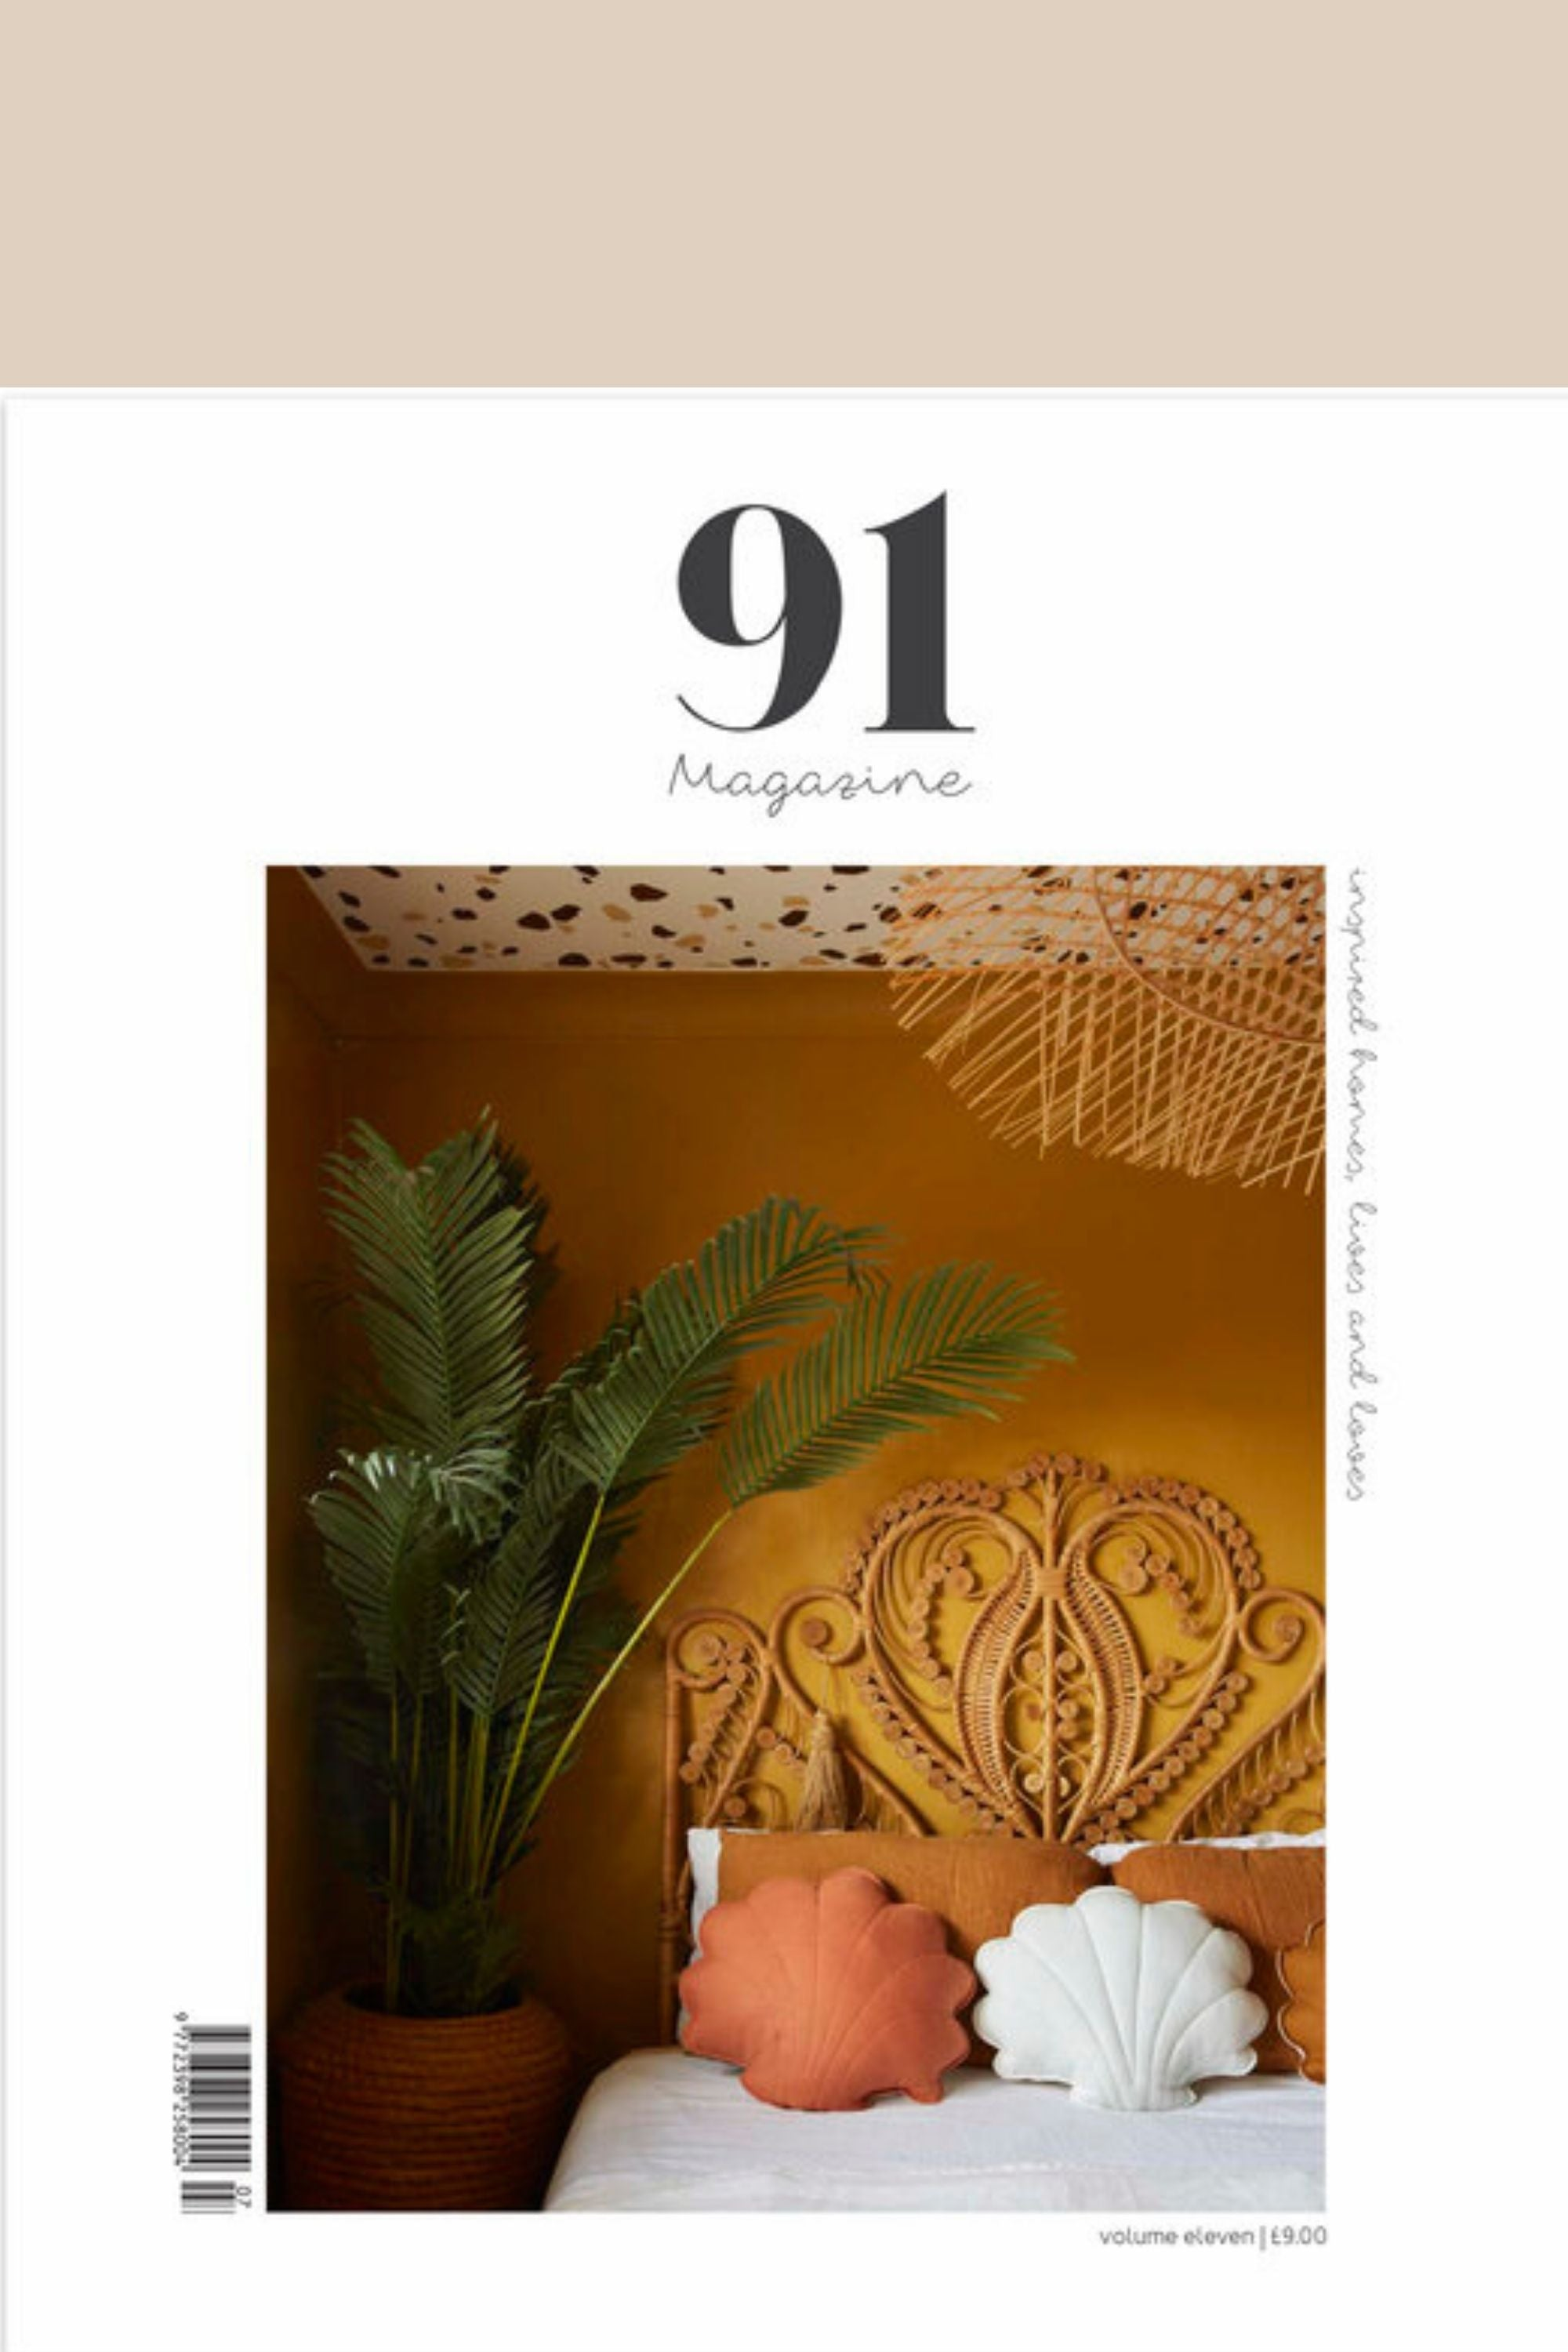 91 Magazine Homes and Interiors volume 11 cover